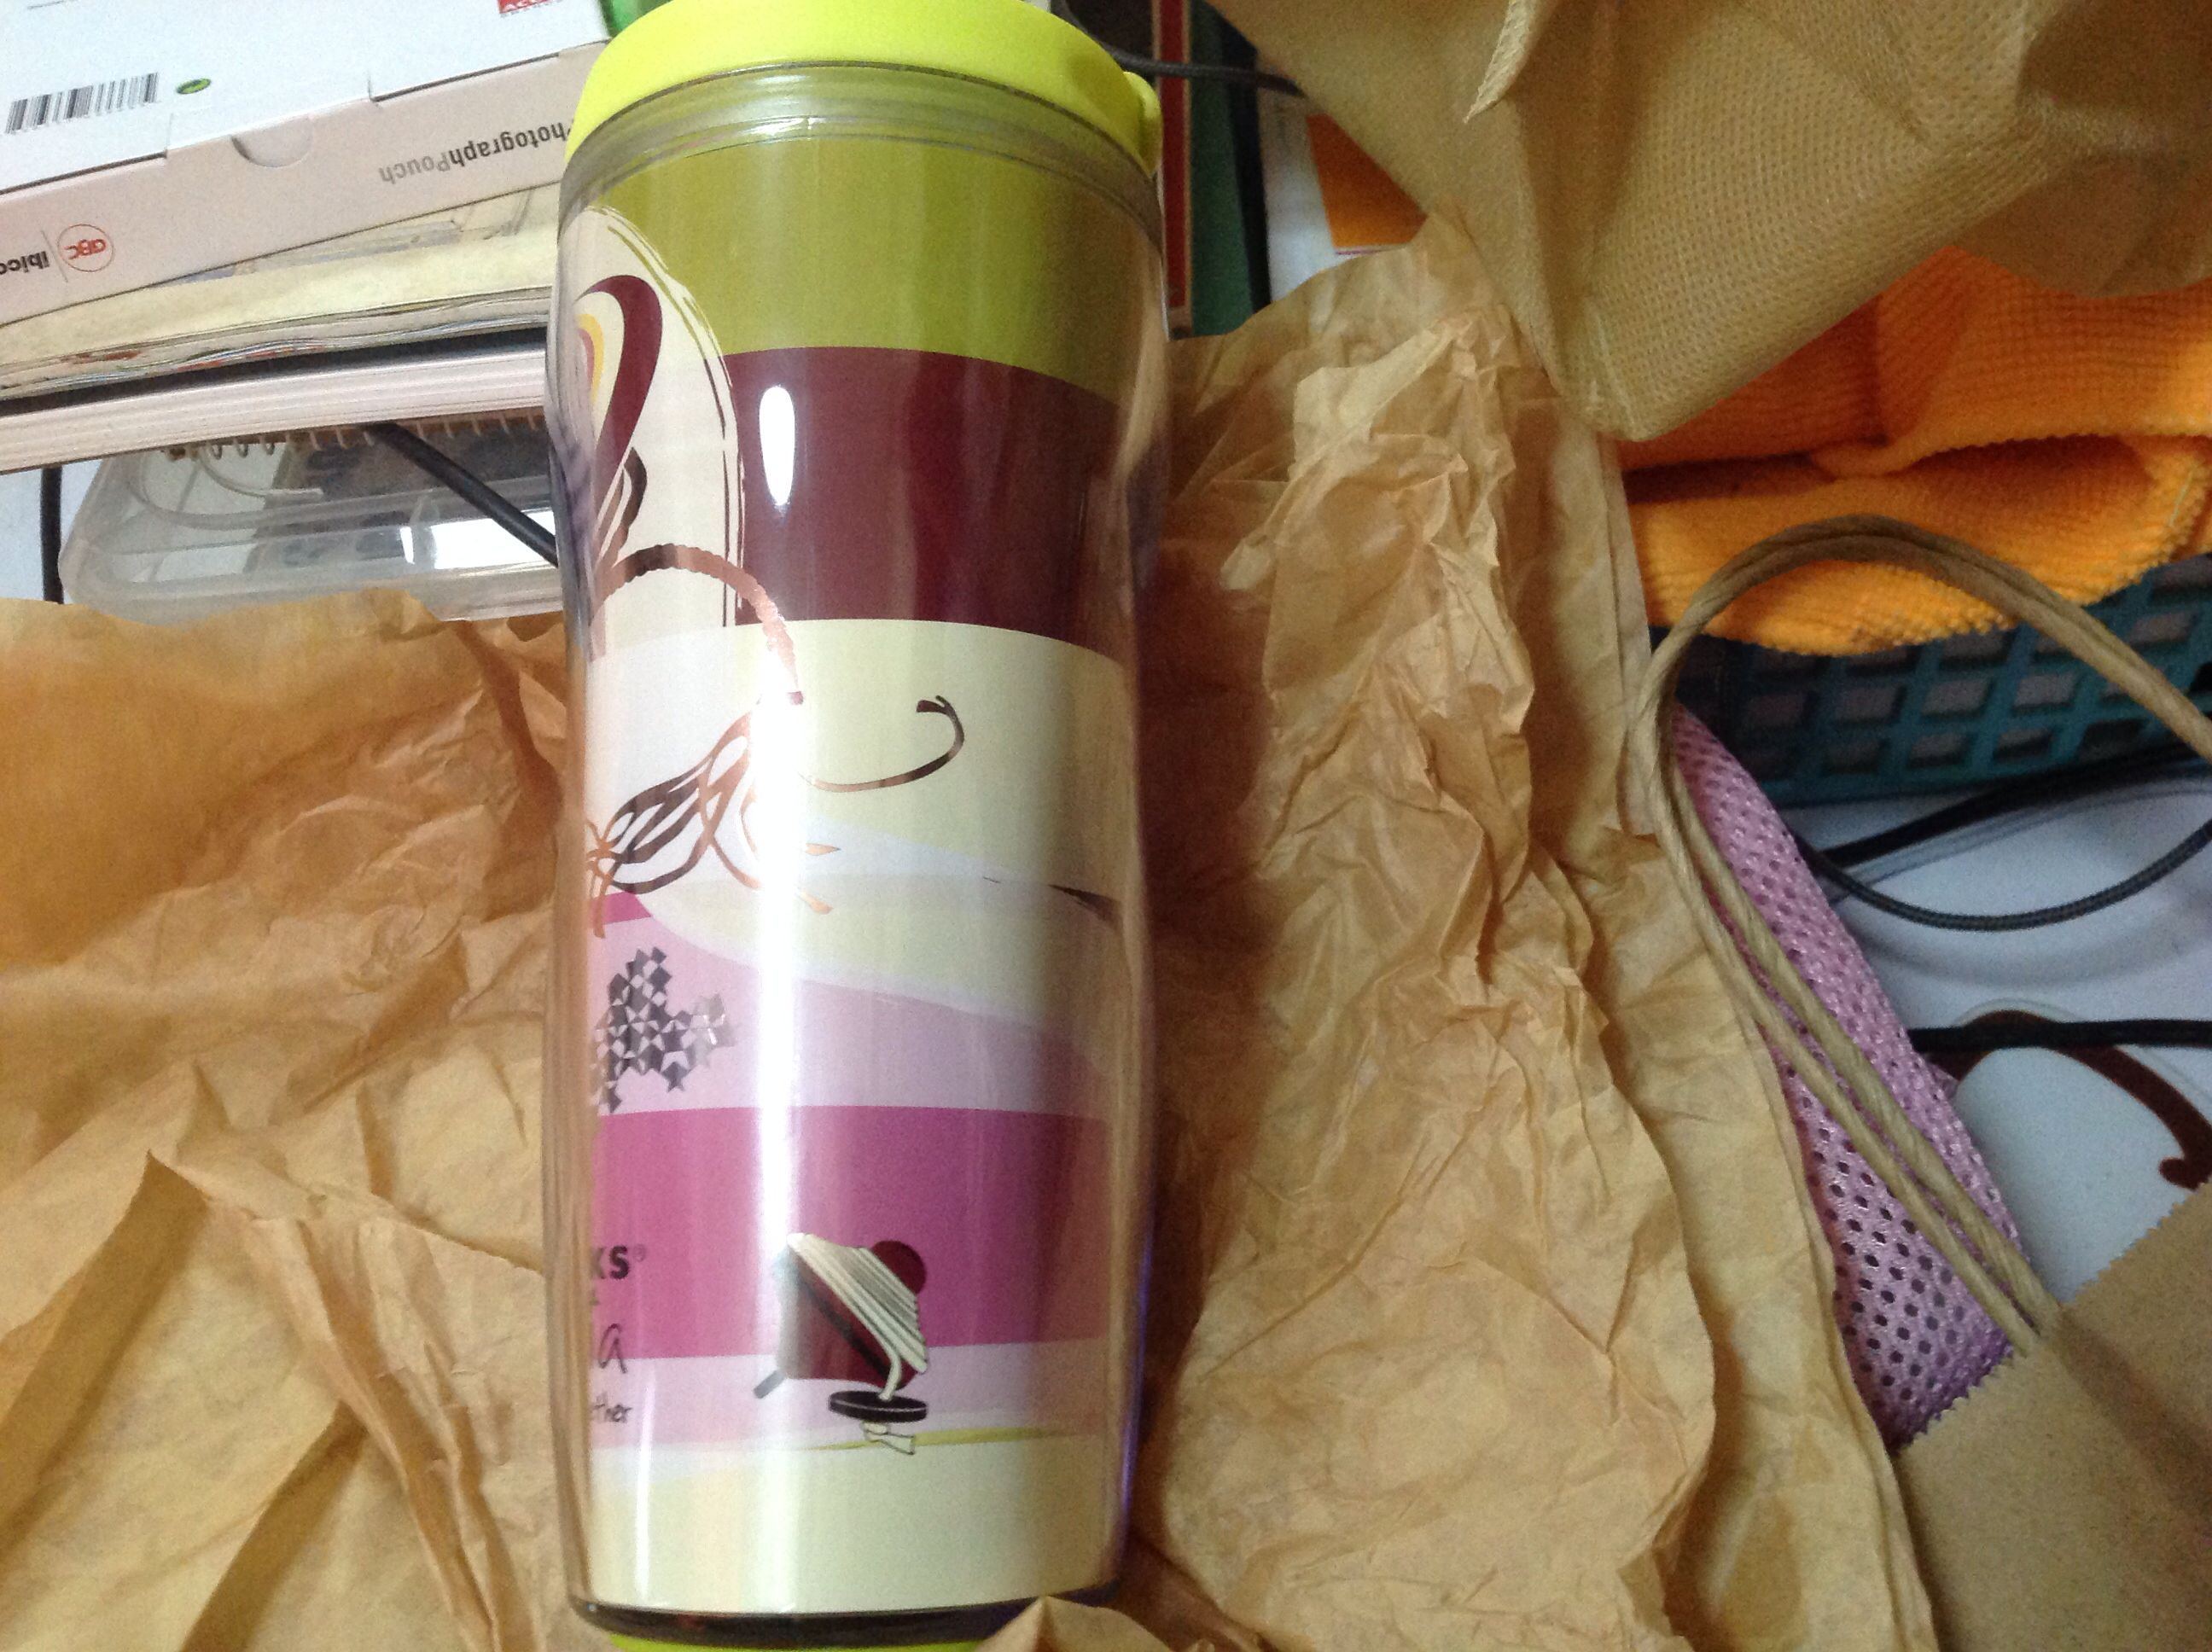 15th anniversary tumbler the Gasing motif from Starbucks